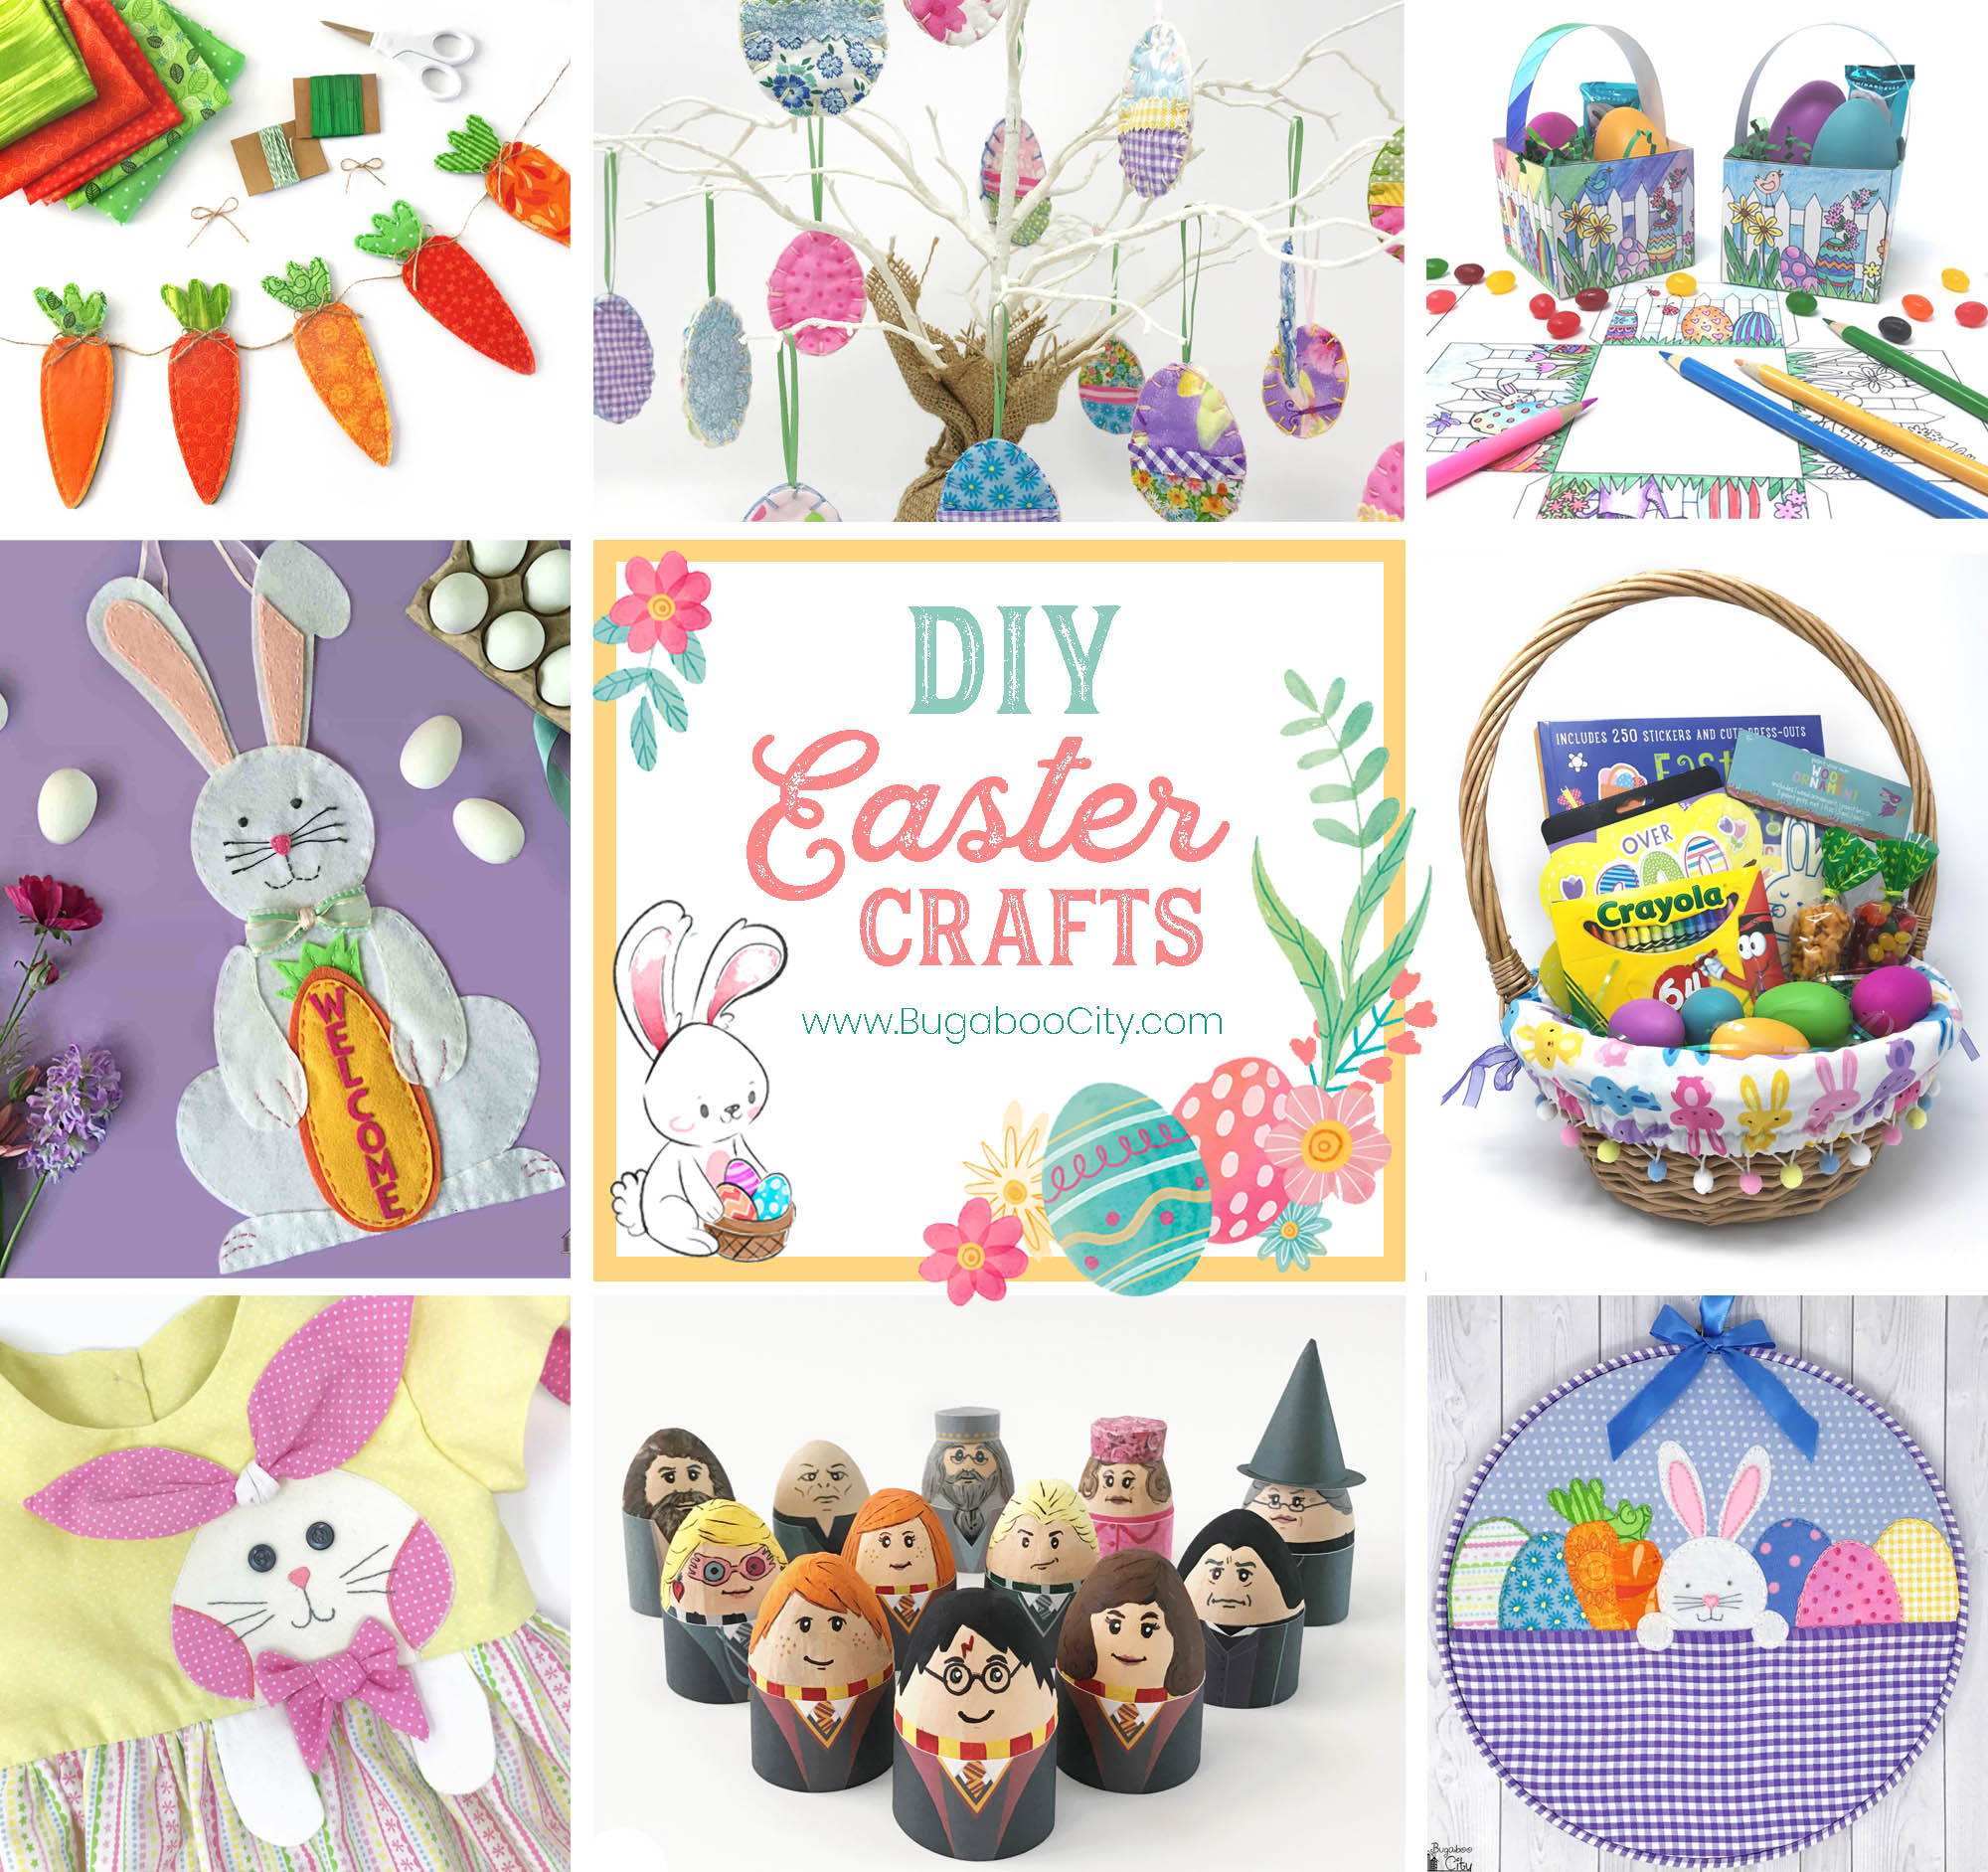 DIY Easter Crafts by BugabooCity